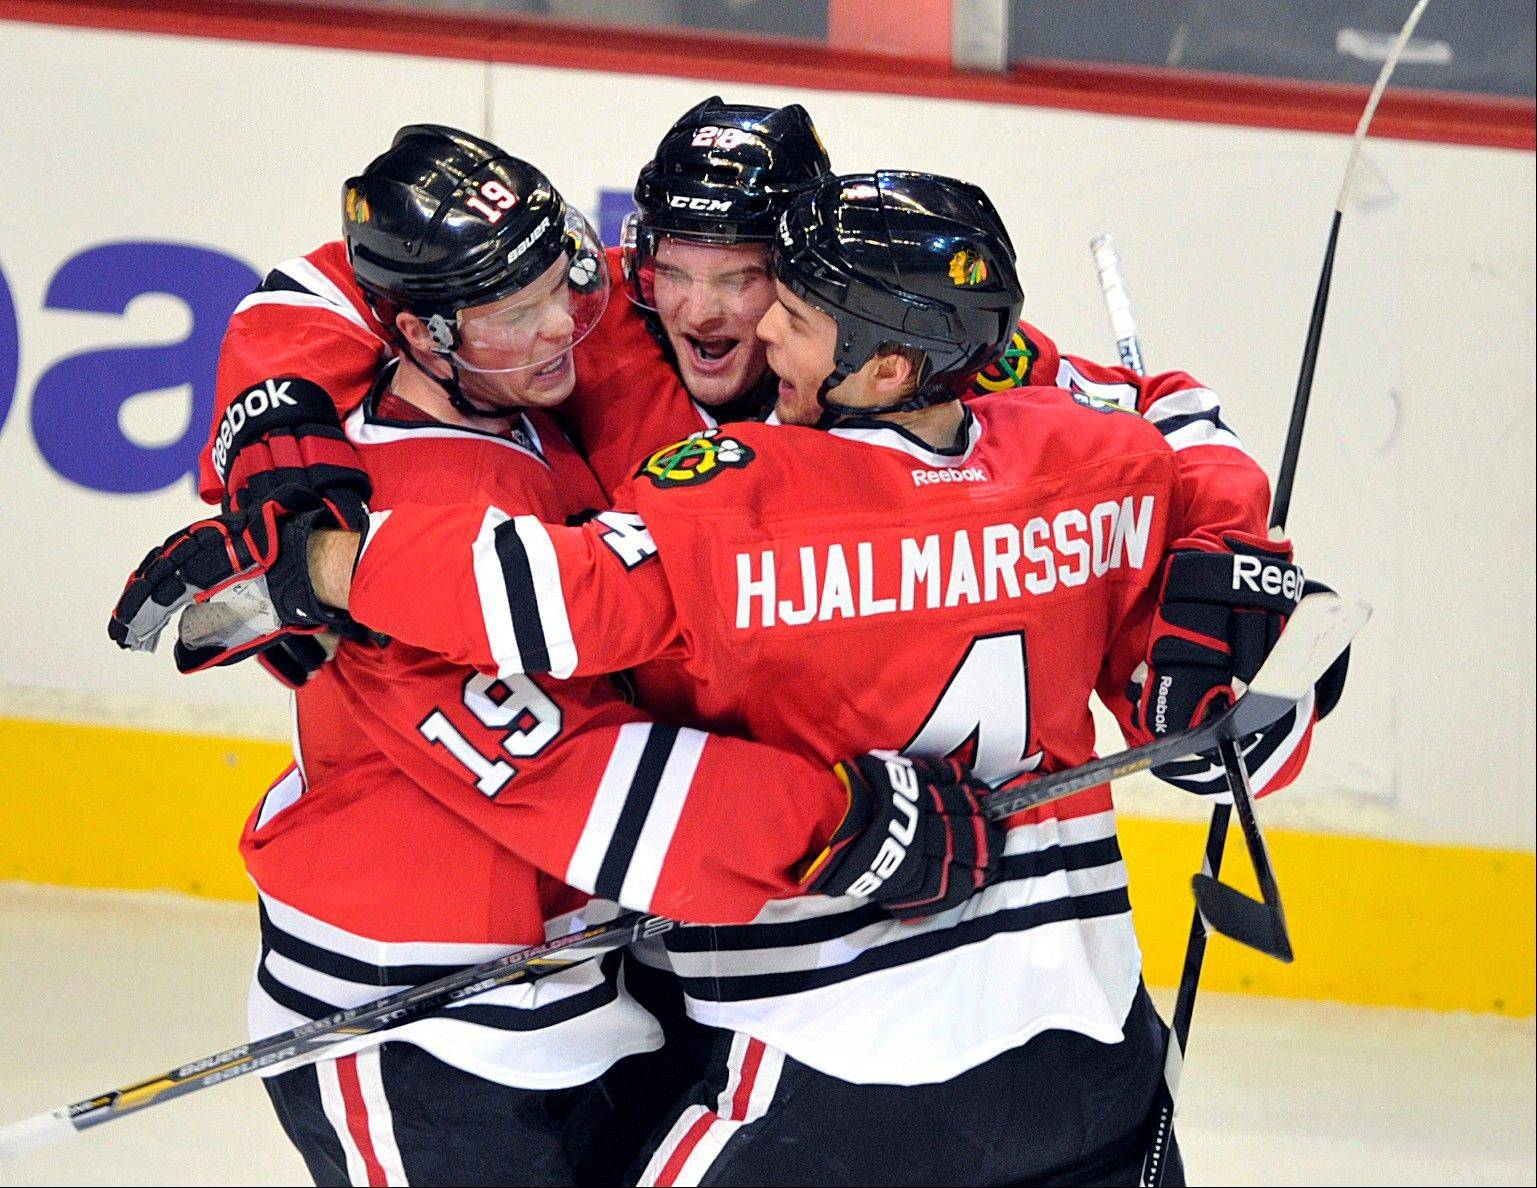 Chicago Blackhawks' Brandon Saad, center, celebrates with teammates Jonathan Toews (19) and Niklas Hjalmarsson (4) after Saad's goal against the Nashville Predators during the first period.